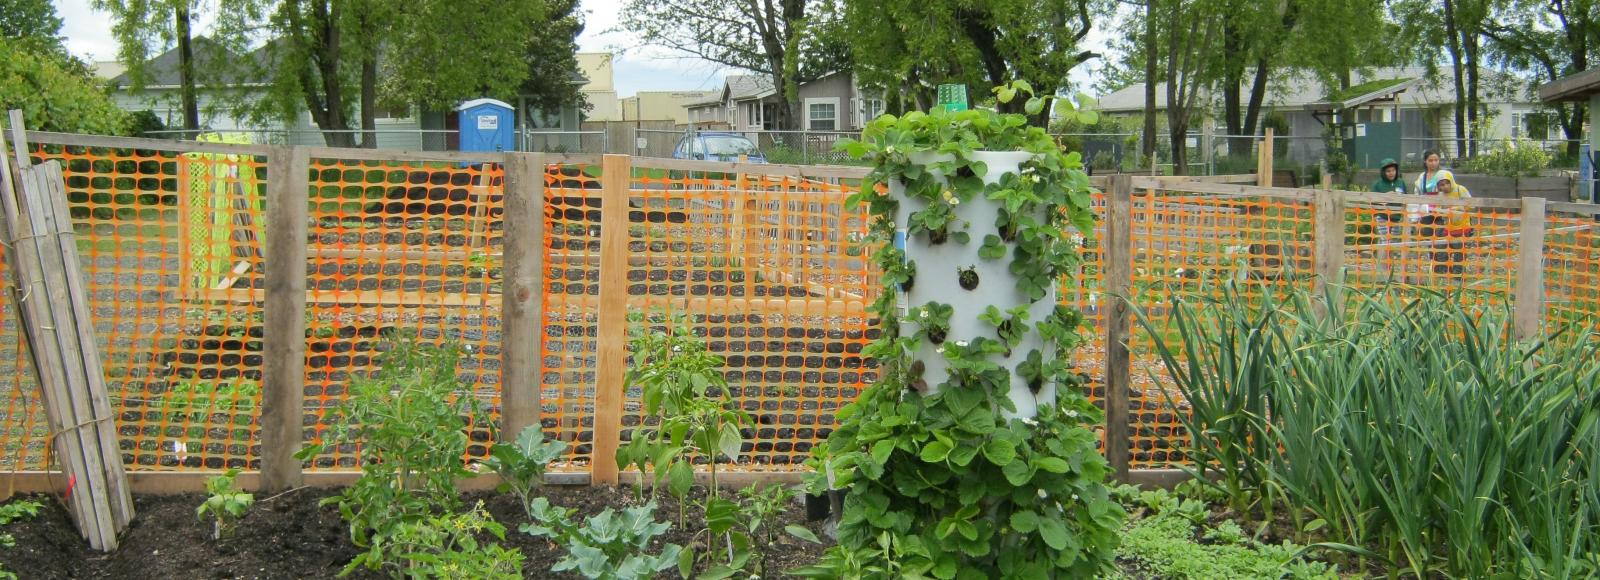 A community garden in the Cully neighborhood in north Portland.